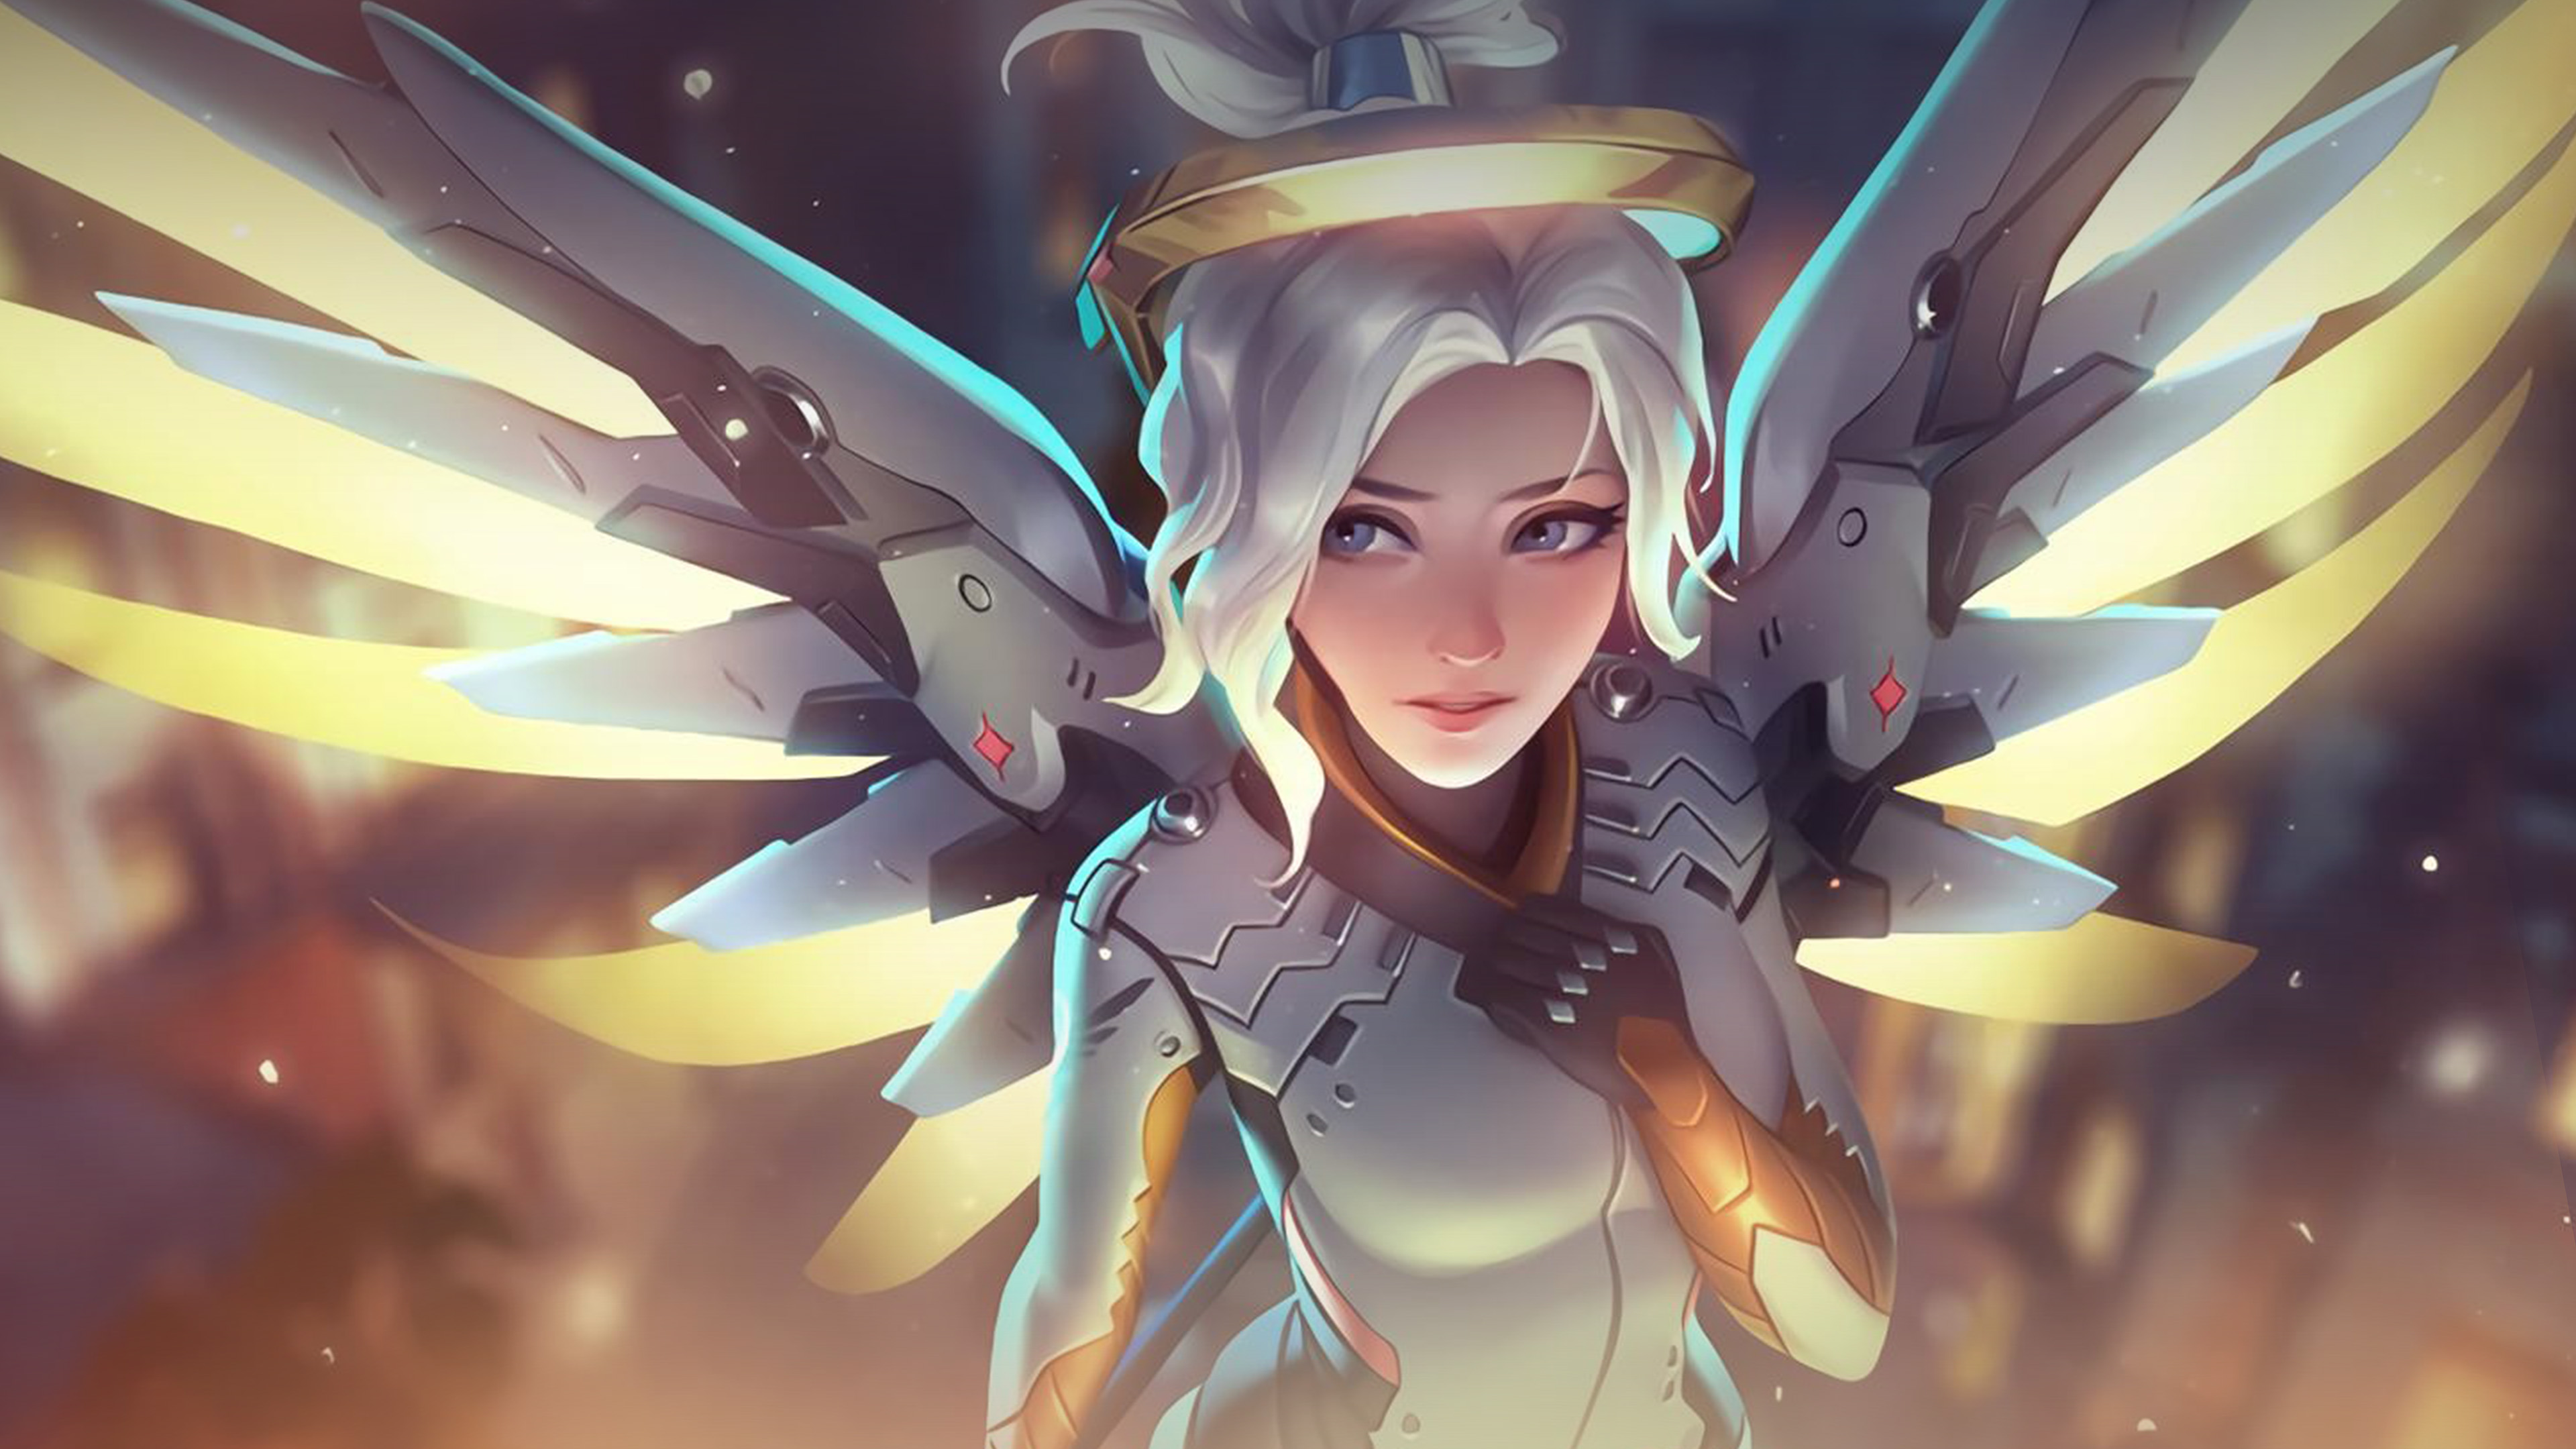 Cool Girls Overwatch Wallpapers I Love Papers At82 Mercy Overwatch Angel Healer Game Art